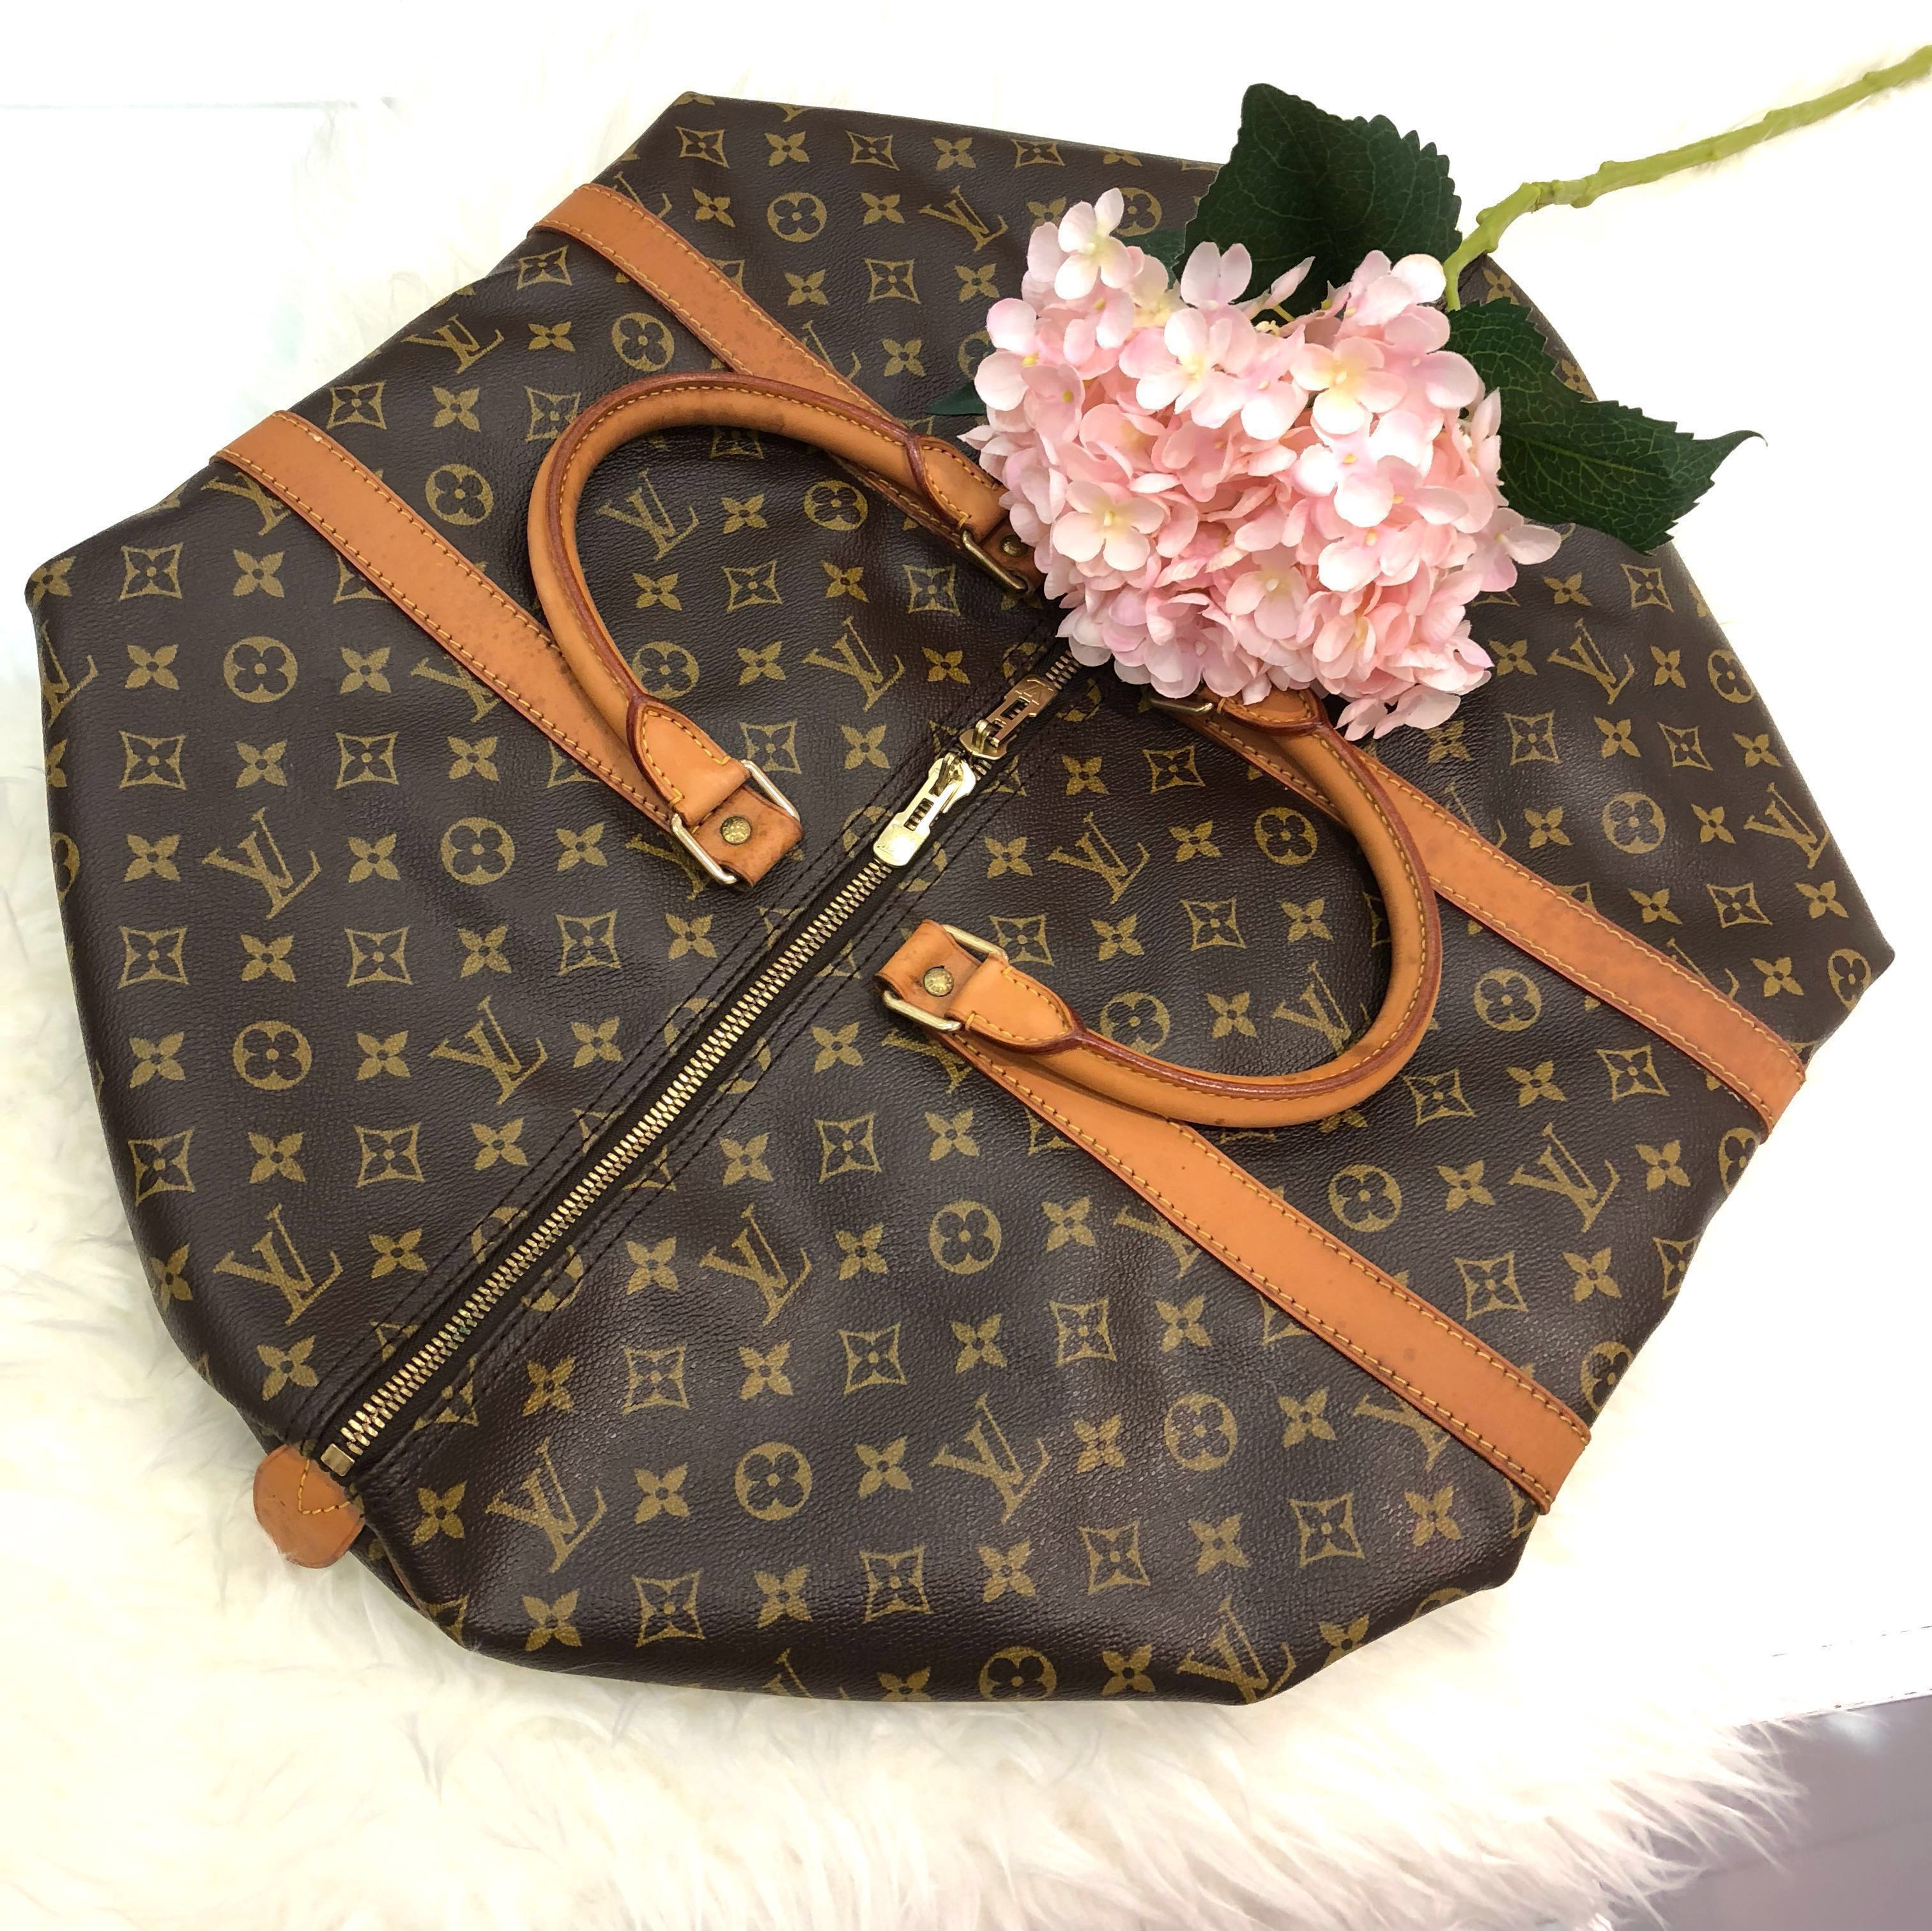 0741fe99884f ❌SOLD!❌ Louis Vuitton Keepall 55 in Monogram Canvas GHW.